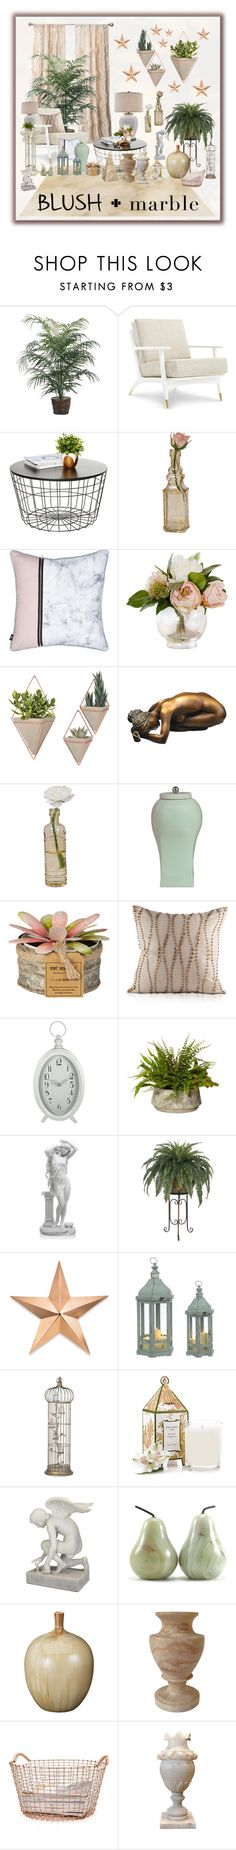 """""""Blush & Marble"""" by shadow-dancer-artist ❤ liked on Polyvore featuring interior, interiors, interior design, home, home decor, interior decorating, Rene, Currey & Company, Cultural Intrigue and Thos. Baker"""